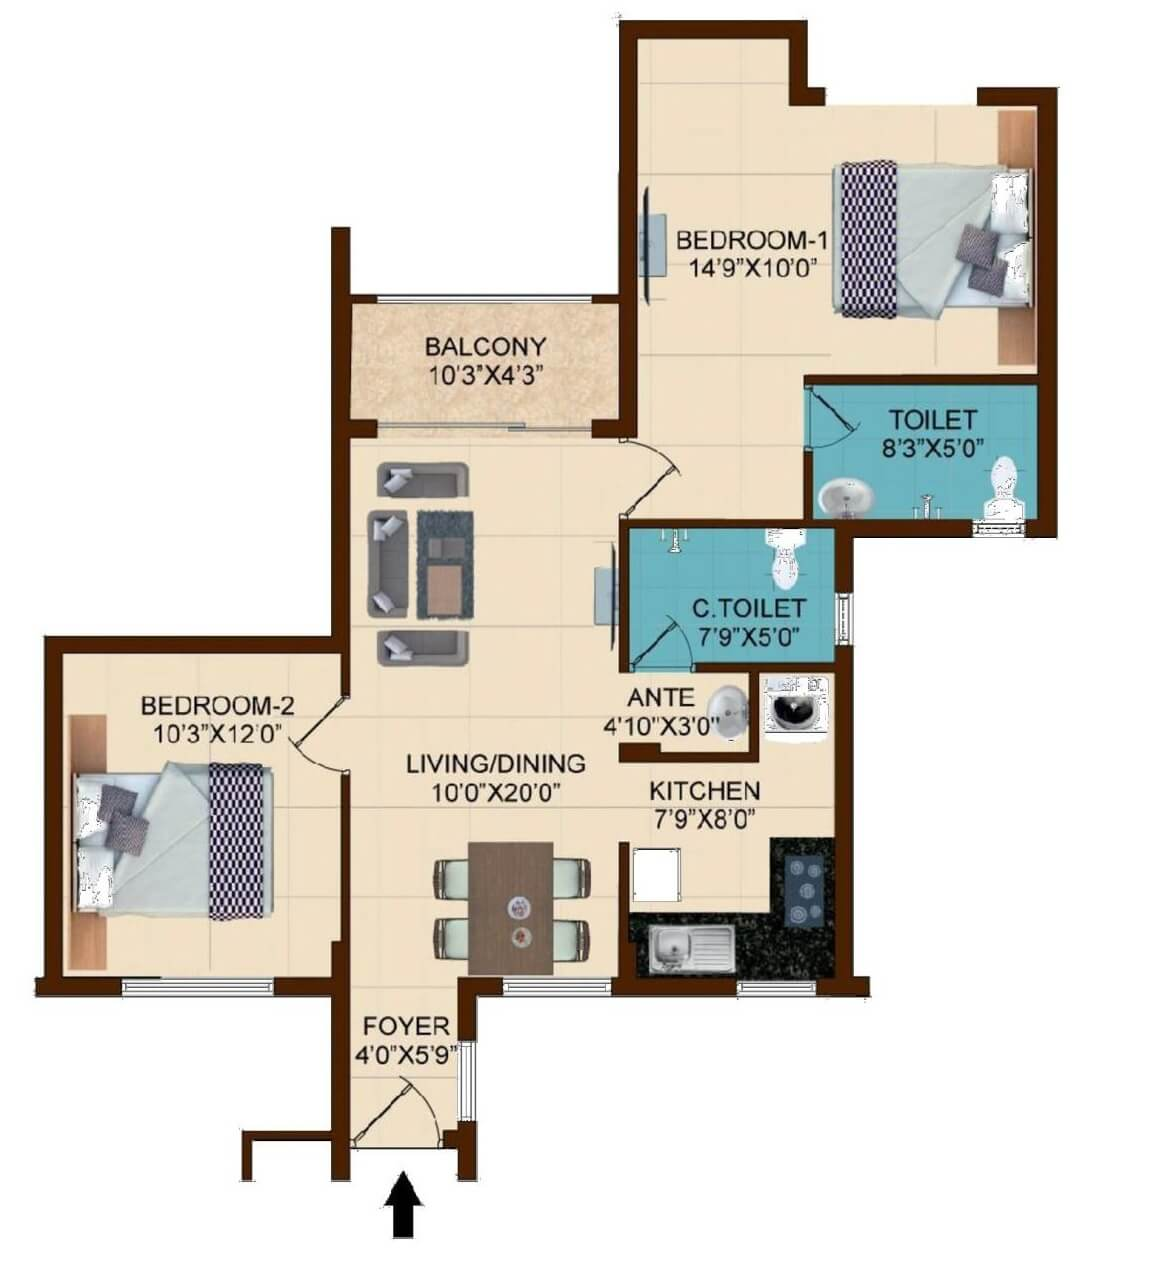 shriram temple bells in guduvanchery chennai project overview 2 bhk 1065 sq ft apartment floor plan